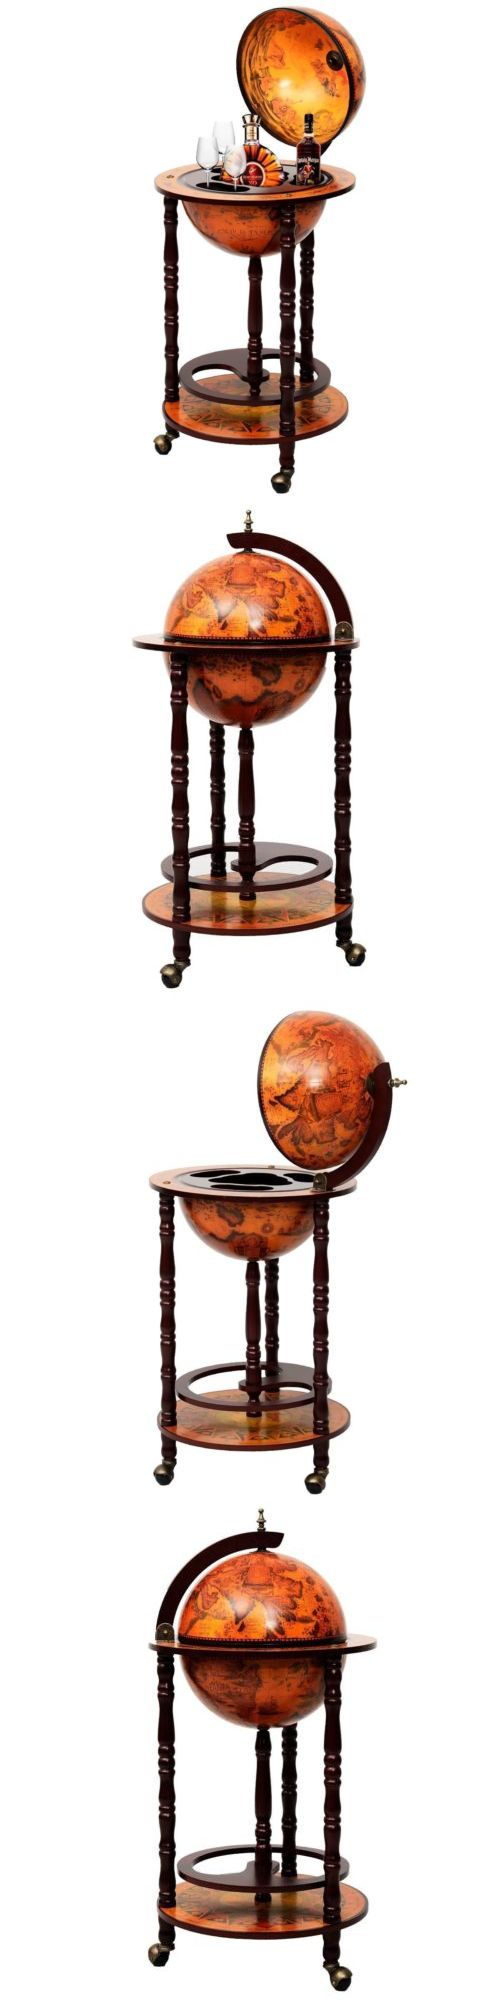 Bar Carts and Serving Carts 183320: New Old World Globe Rolling Wine Beverage Bar Serving Drink Liquor Cart Wooden -> BUY IT NOW ONLY: $99.99 on eBay!